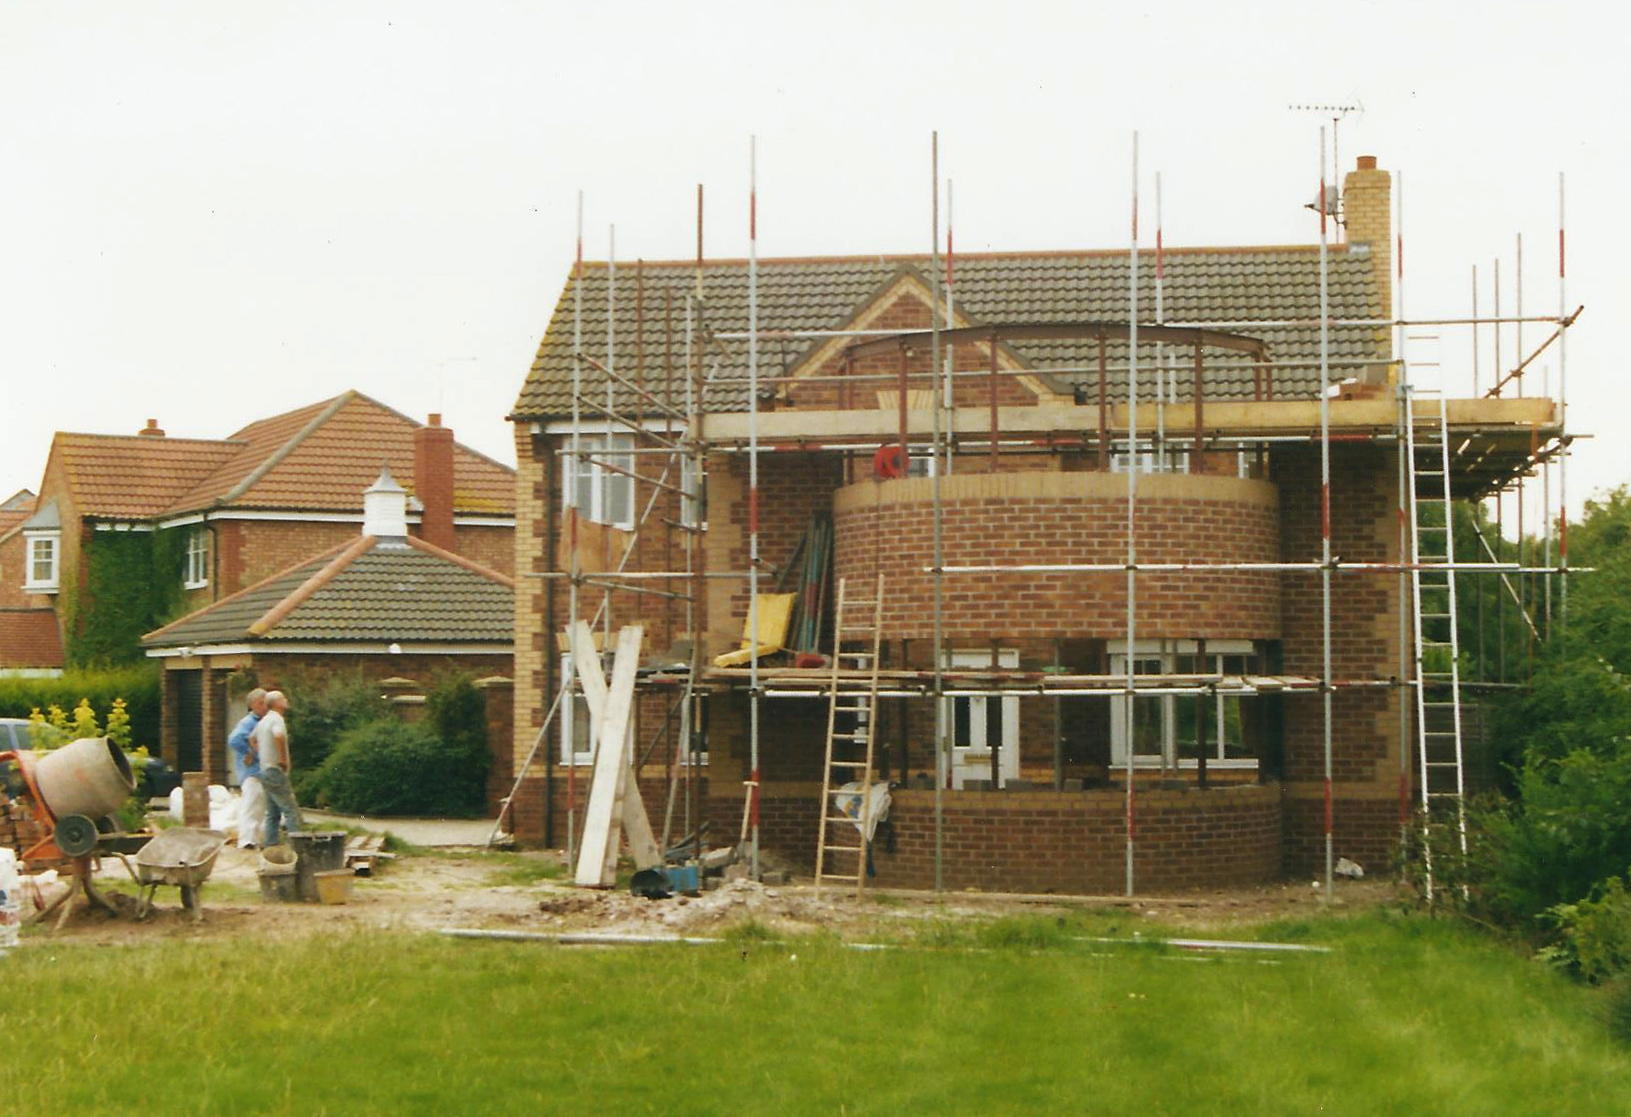 Beverley Road Construction 4 - Driffield Architects - Samuel Kendall Associates.jpg